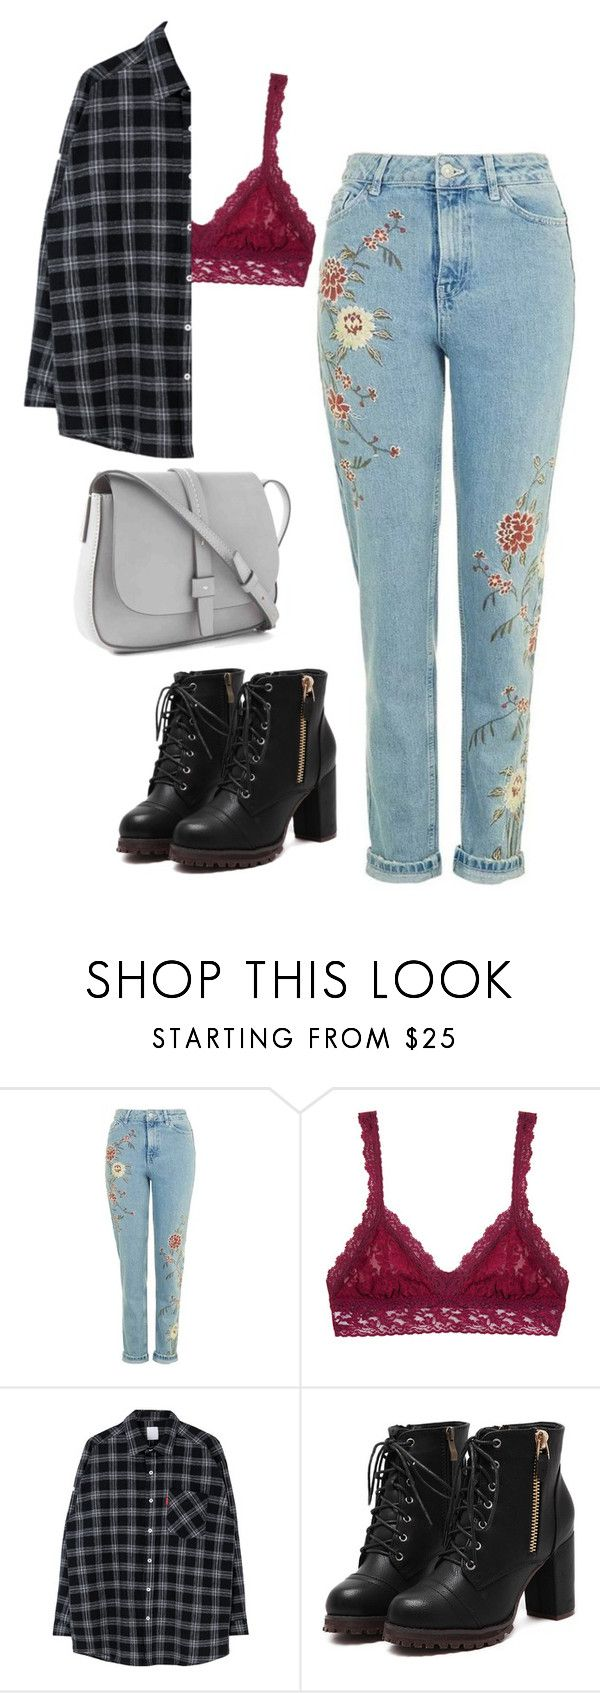 """""""listening to my new fav song"""" by vincentvangoth ❤ liked on Polyvore featuring Hanky Panky and Gap"""